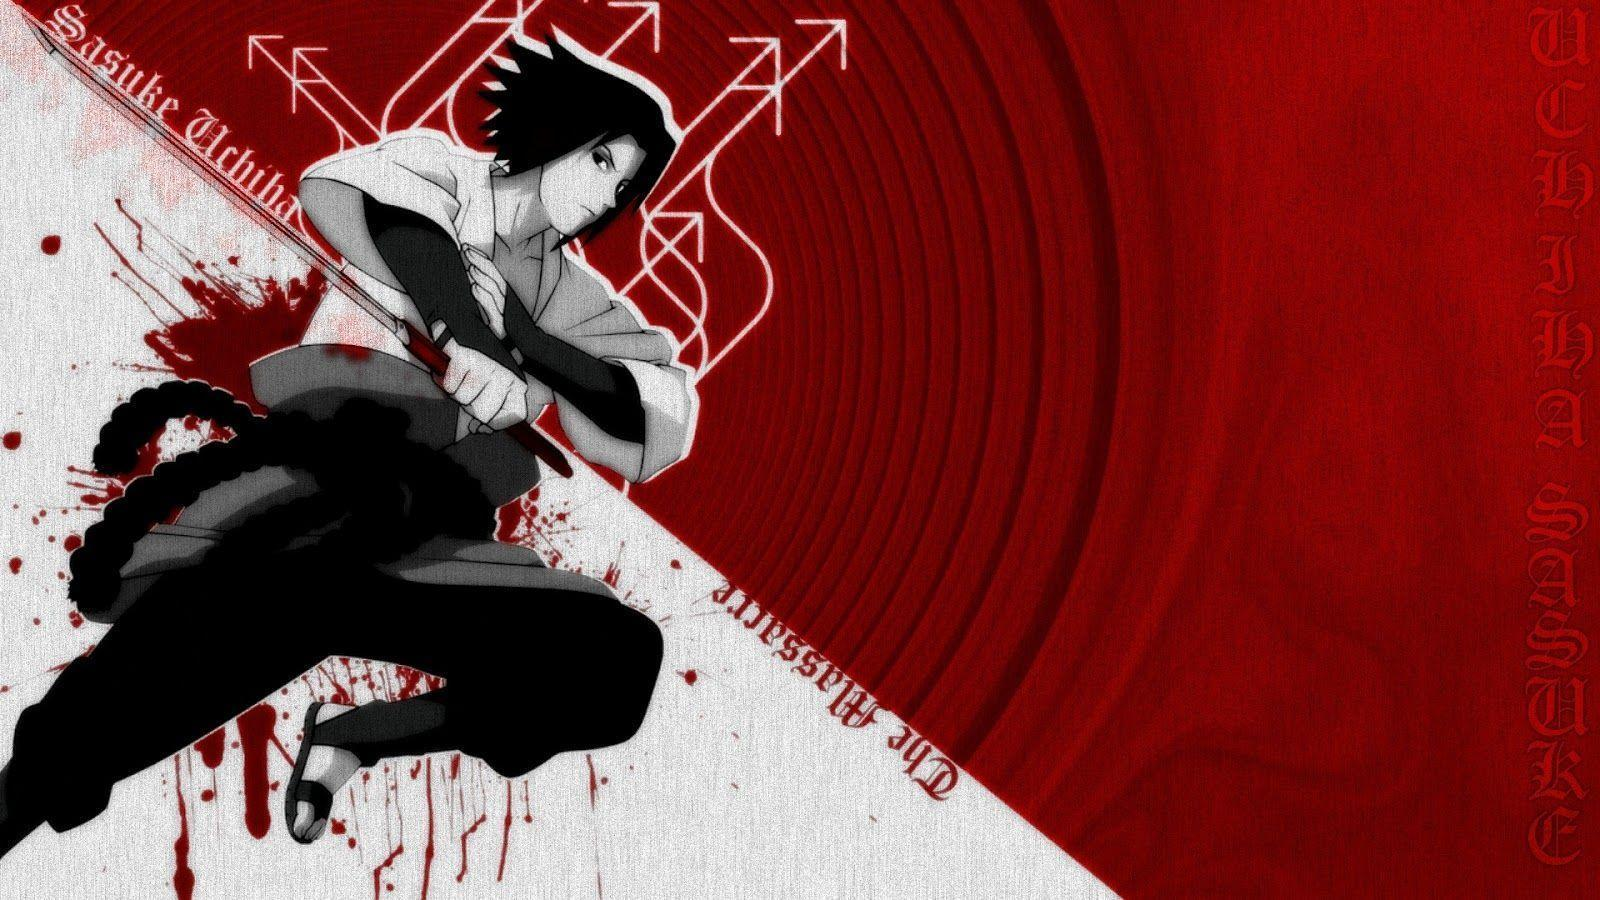 Wallpapers For > Sasuke Uchiha Shippuden Wallpapers